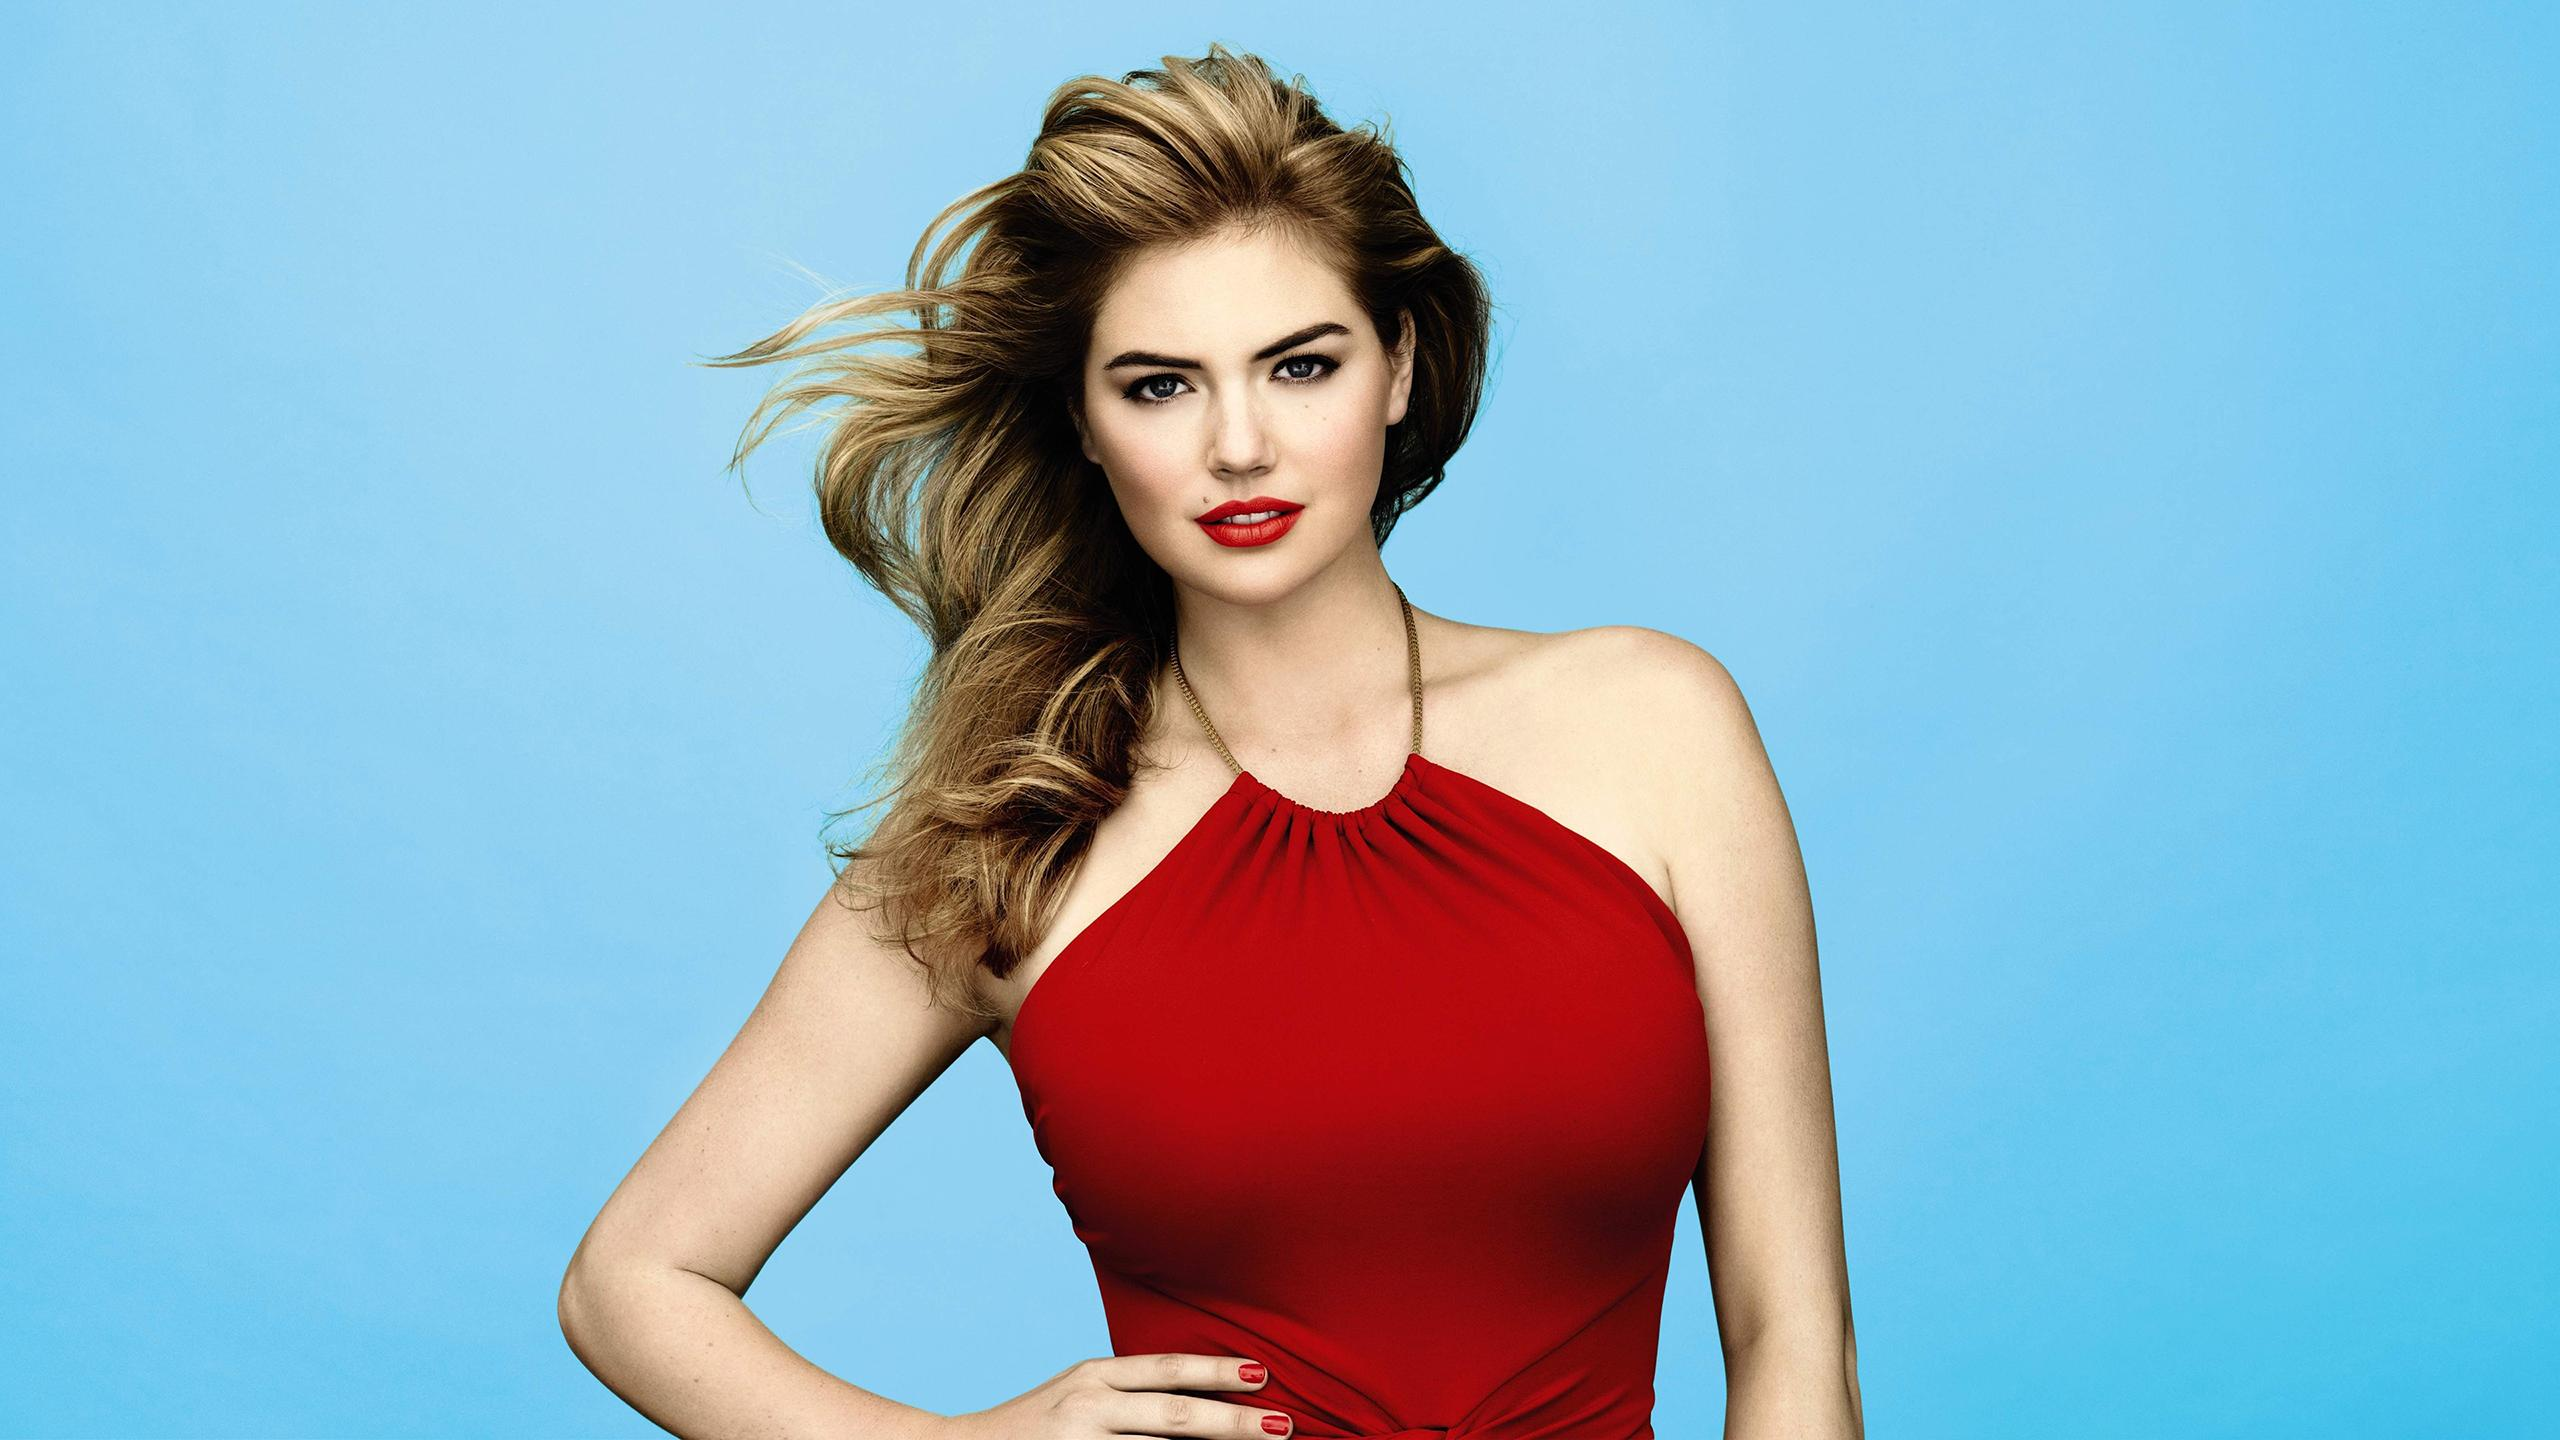 Cute Babydoll Wallpaper Celebrity Model Kate Upton Simple Background Red